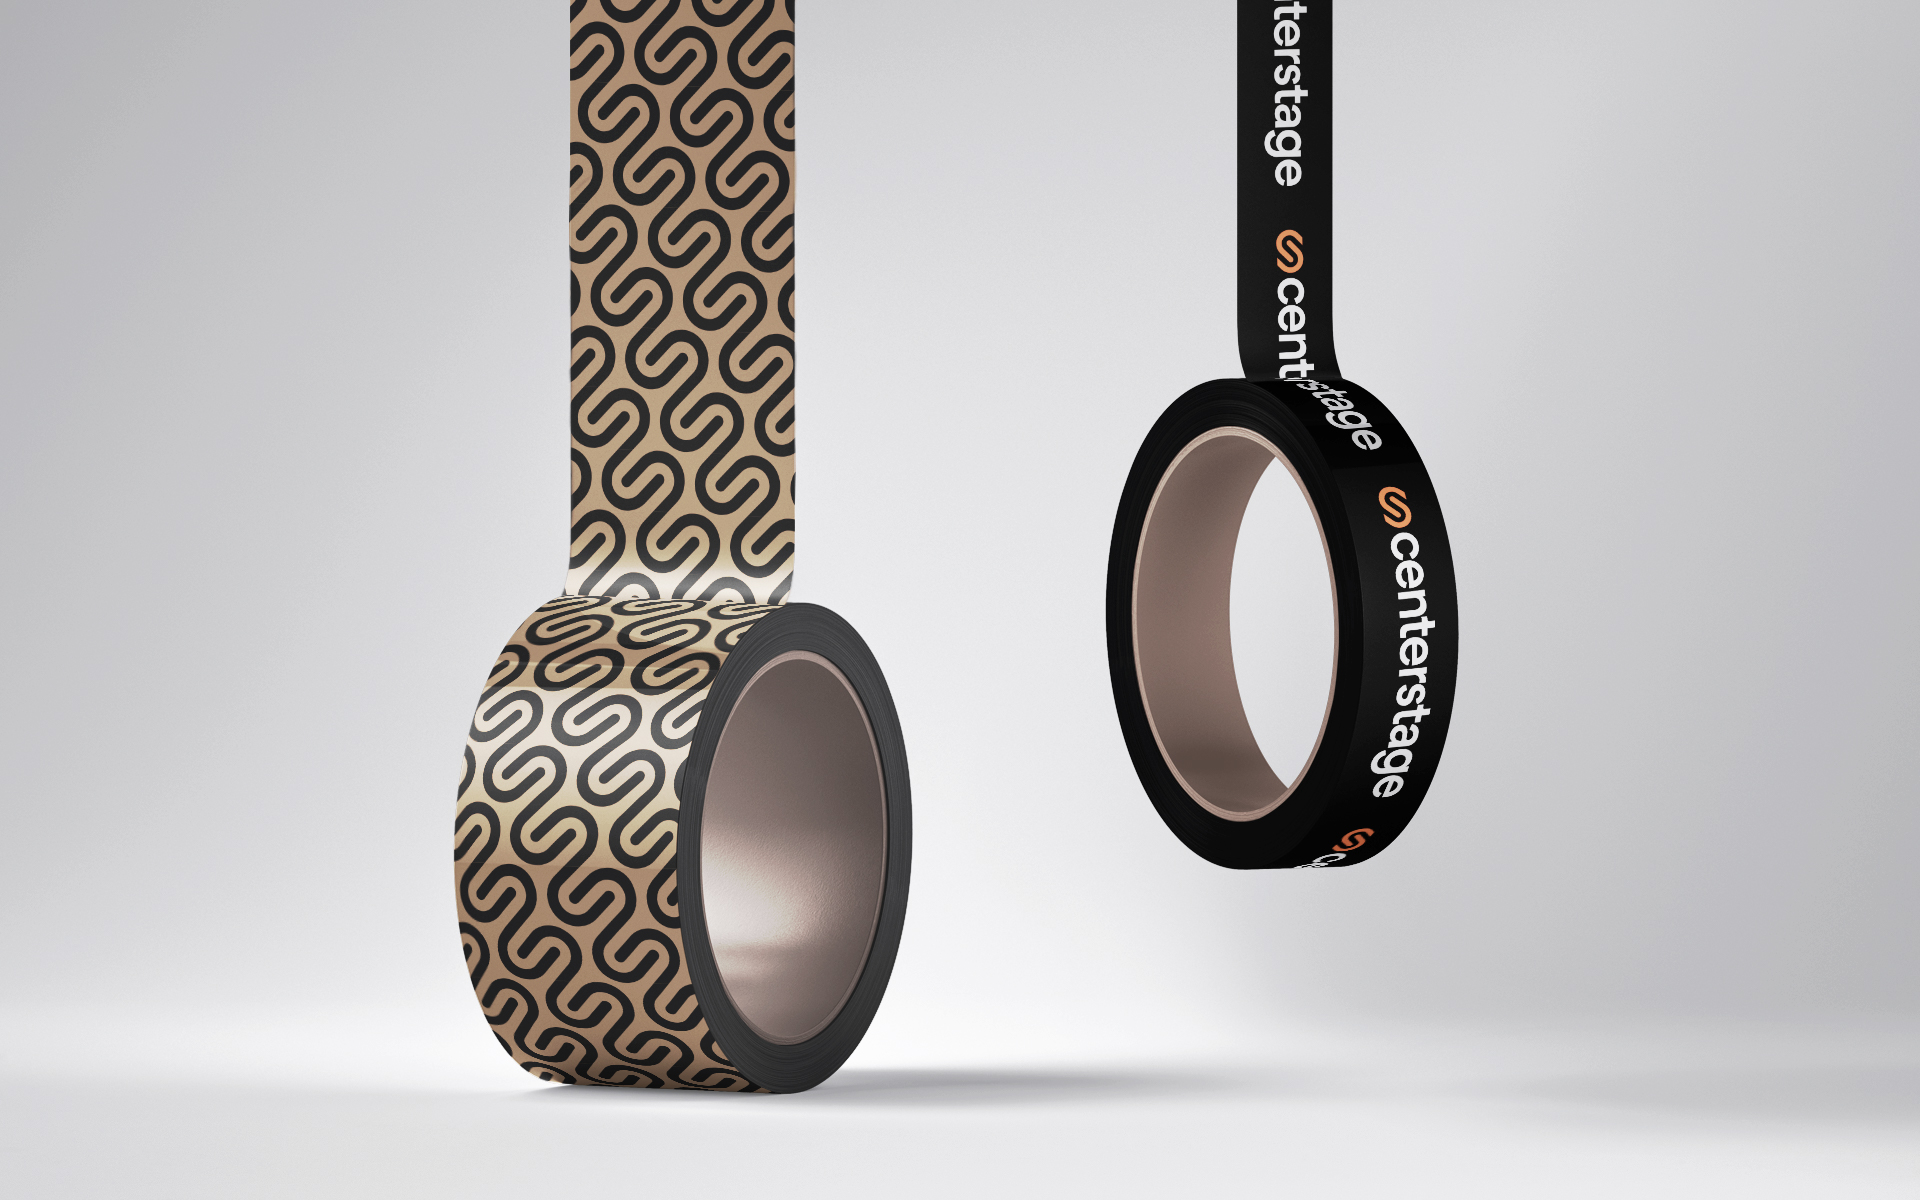 two rolls of tape featuring a patterned Centerstage logo